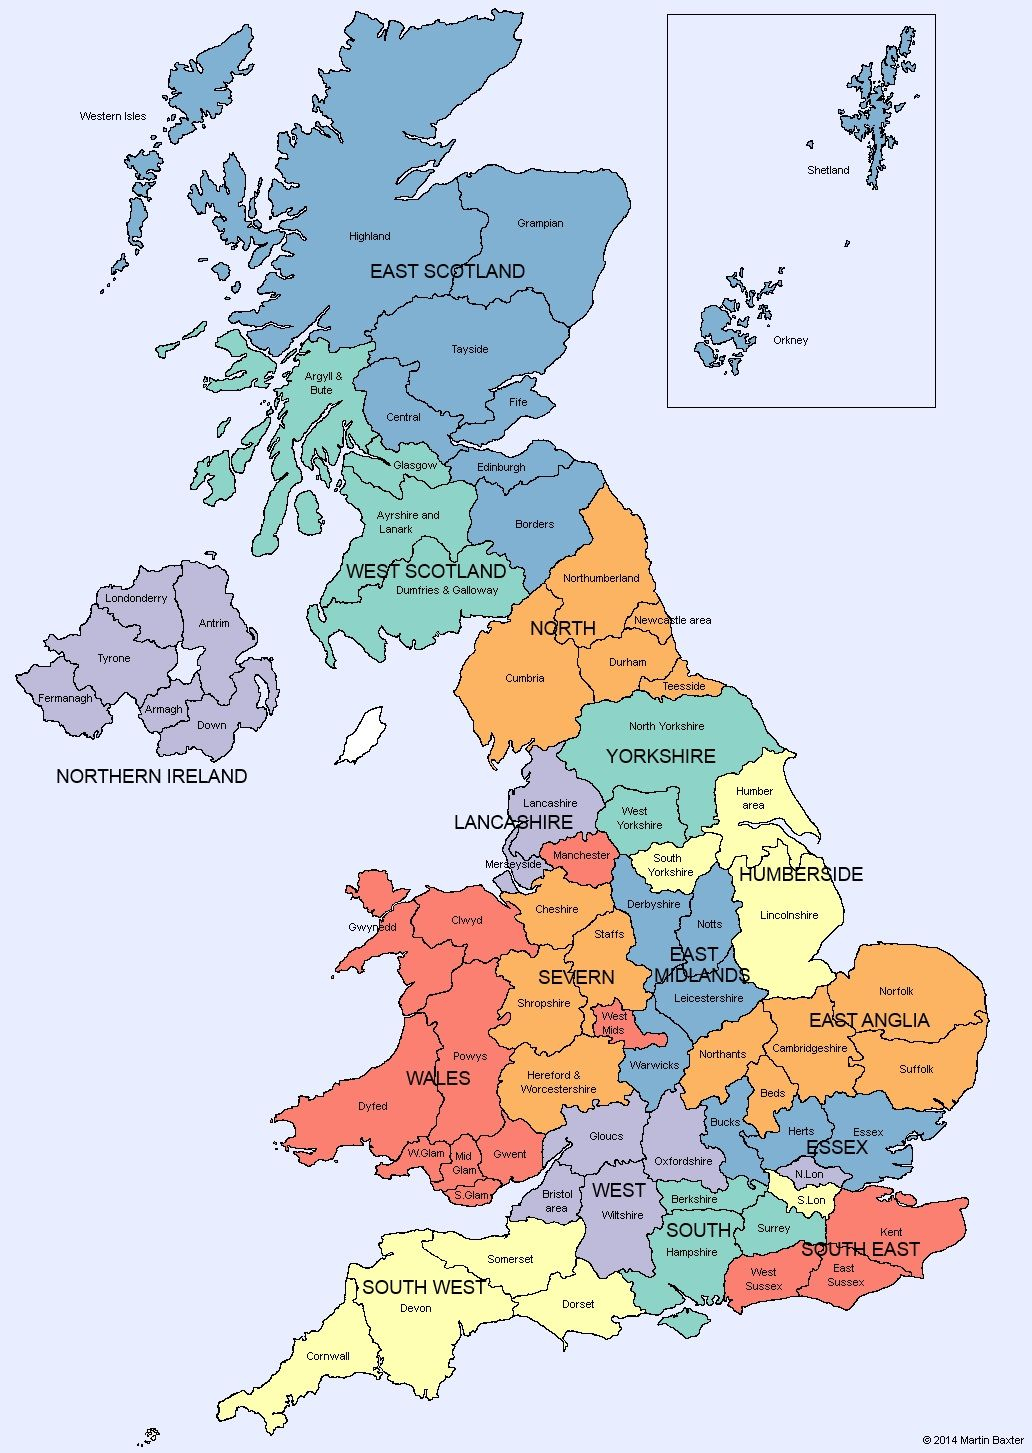 UK Map of Regions and Counties of England Scotland Wales and